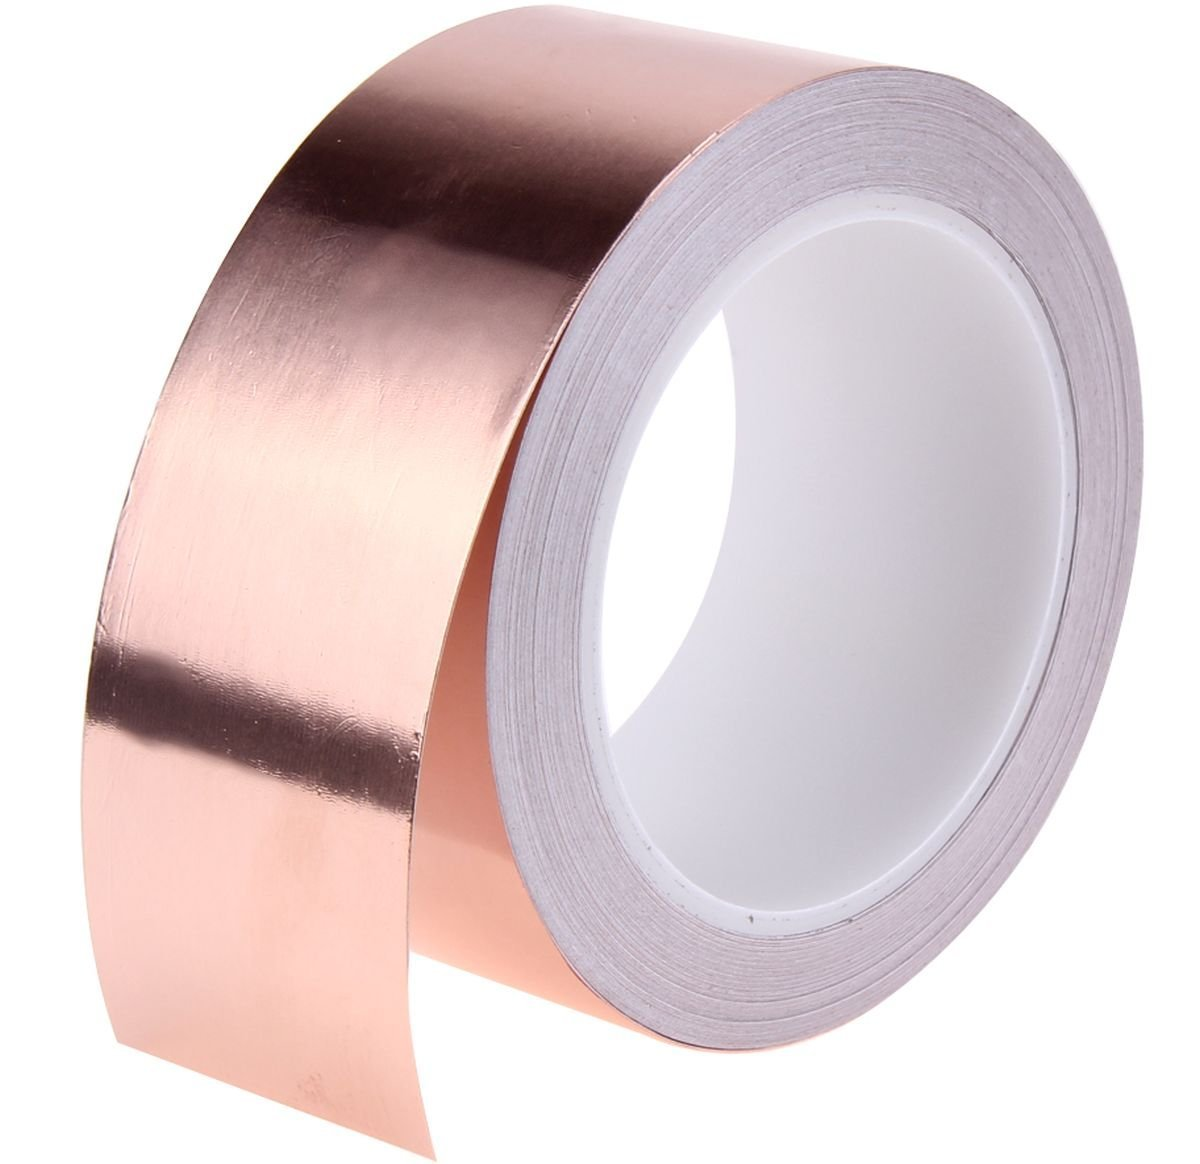 4 meters (1 roll) x Adhesive COPPER Foil TAPE ✯ RELIABLE Slug Snail & Garden Pest Repeller ✯ CONDUCTIVE Tape Ideal for small Electrical Jobs, CRAFTS, DIY, GUITAR REPAIR ✯ HEAVY DUTY Simply the Best